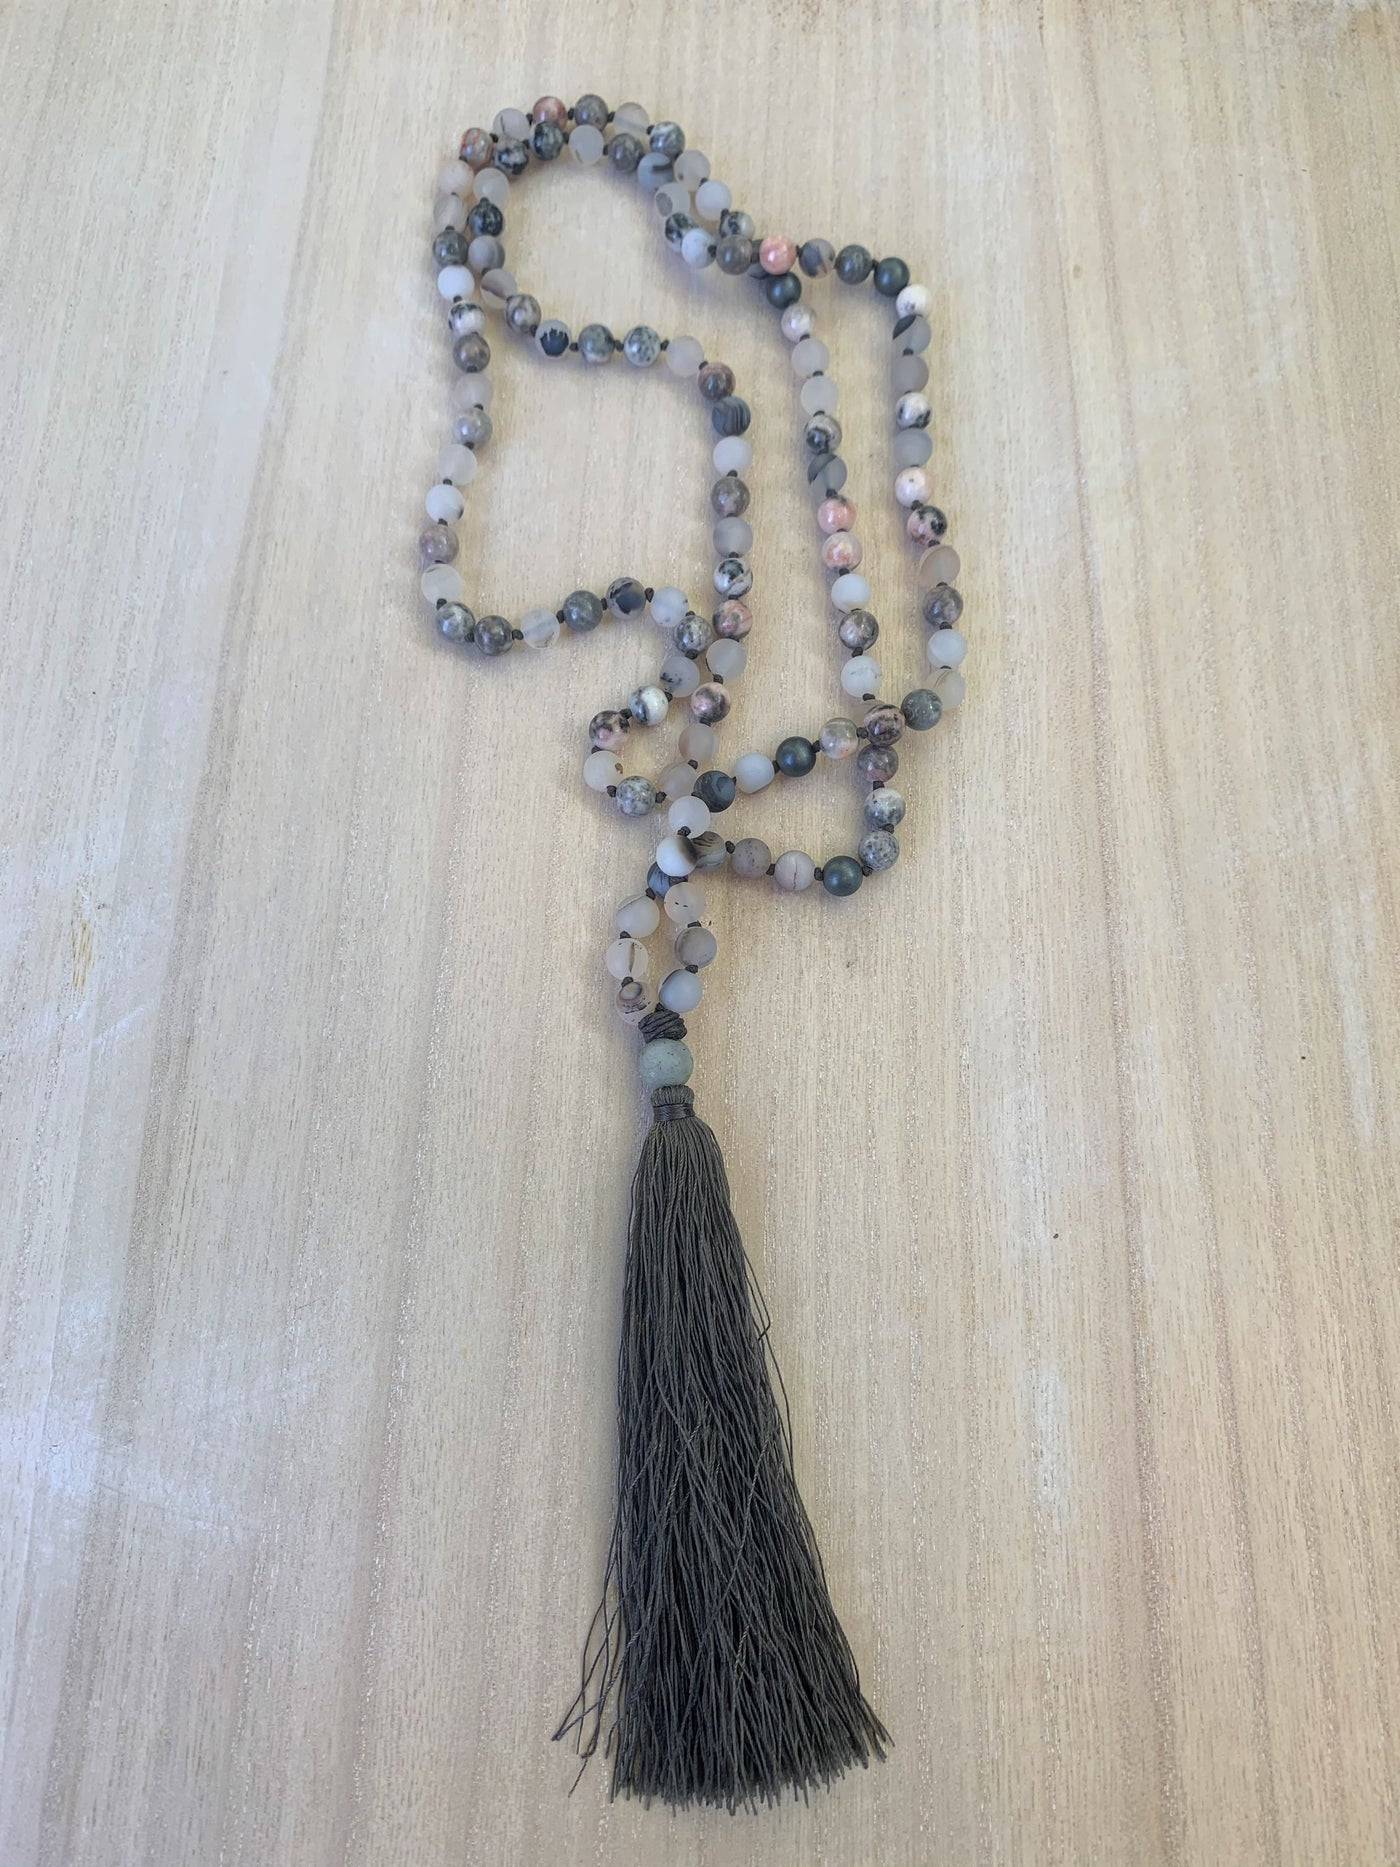 Montana Flower Agate Gemstone Mala Necklace